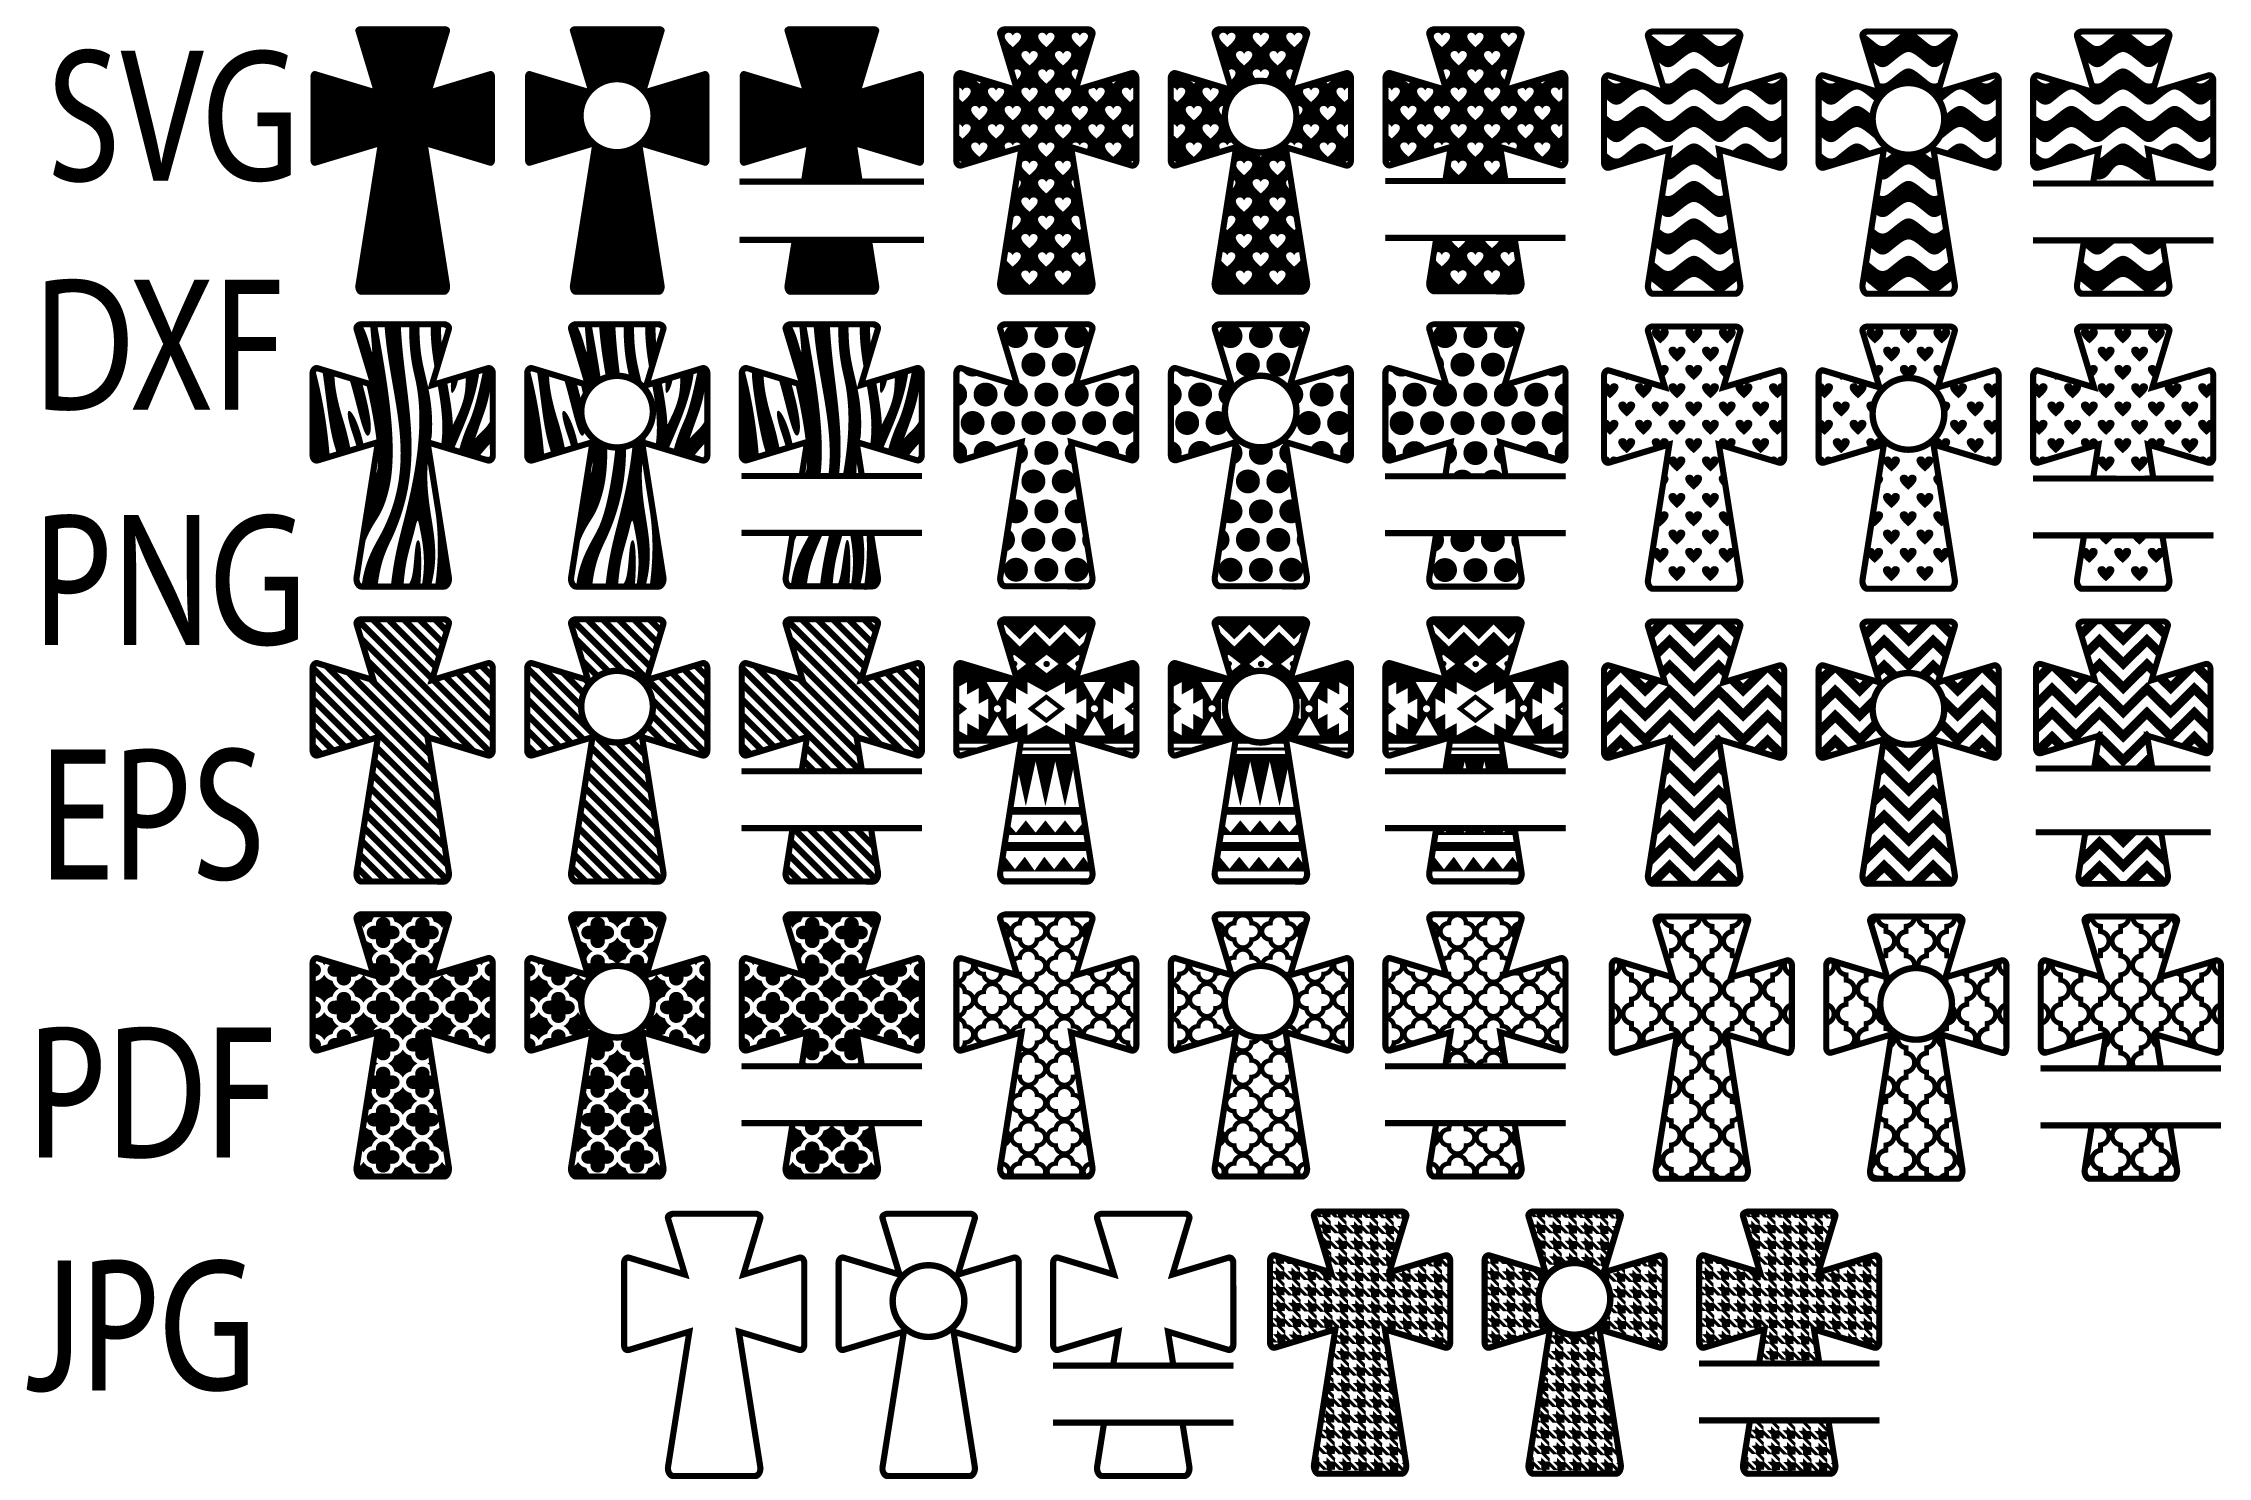 Download Free Patterned Cross Svg Christian Svg Files Cross Monogram Svg for Cricut Explore, Silhouette and other cutting machines.